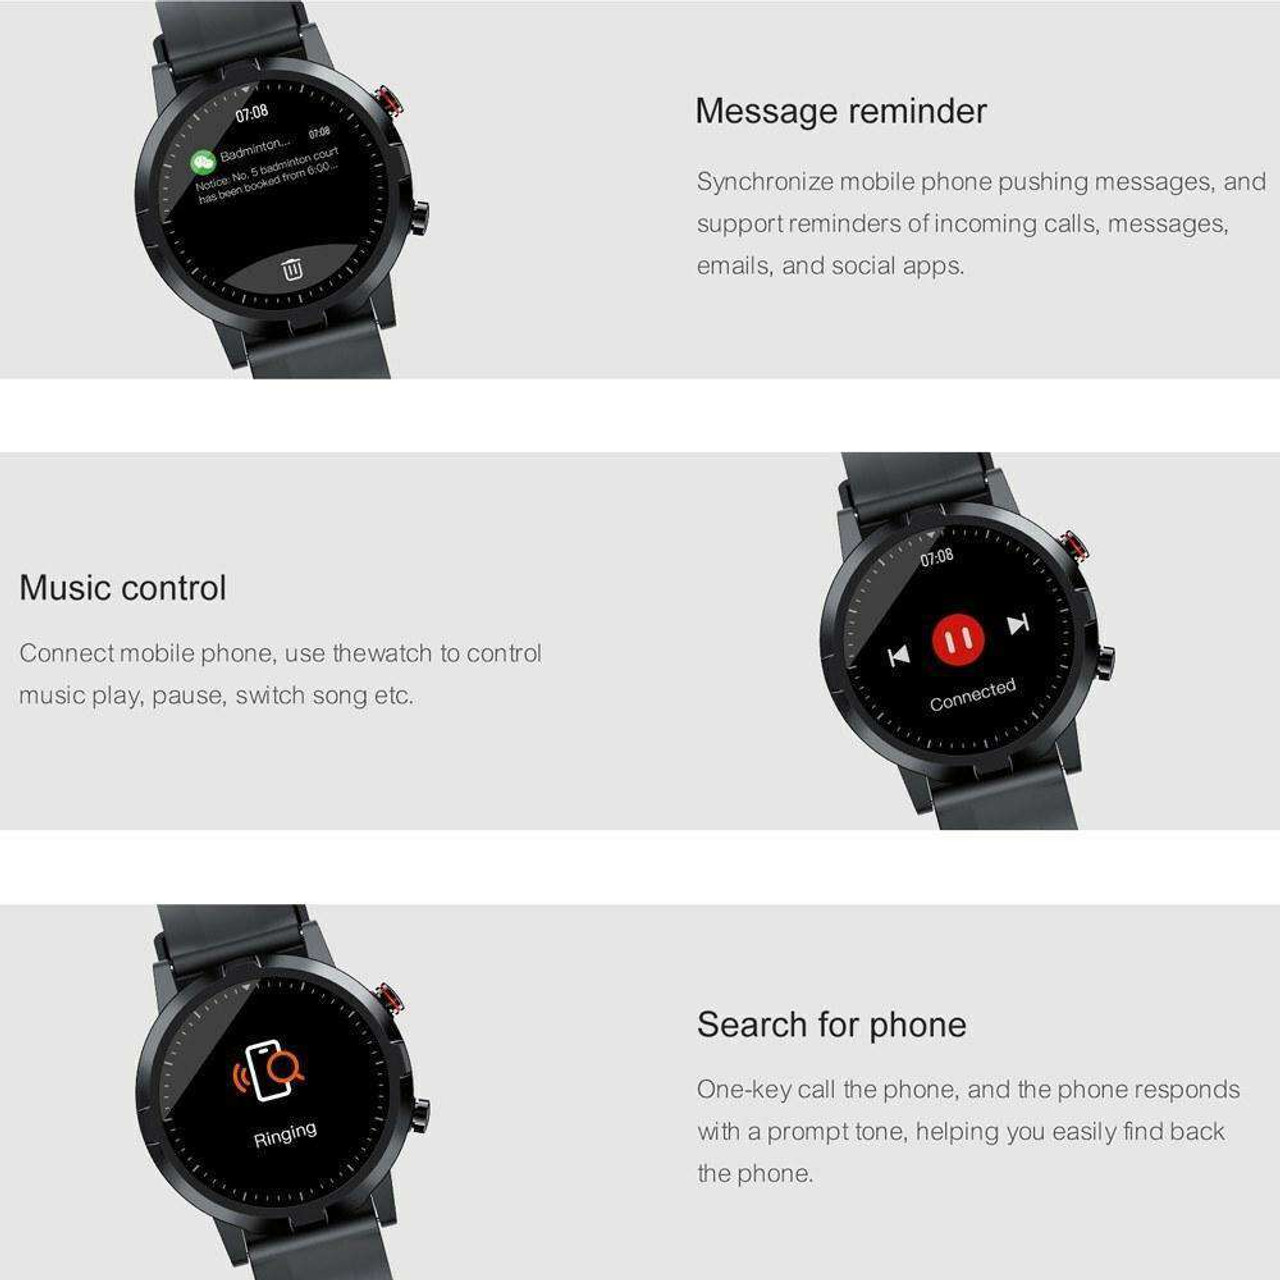 Global Version Haylou RT Smartwatch LS05S 1.28-In BT5.0 Fitness Tracker Waterproof Sleep and Heart Rate Monitor For Android IOS